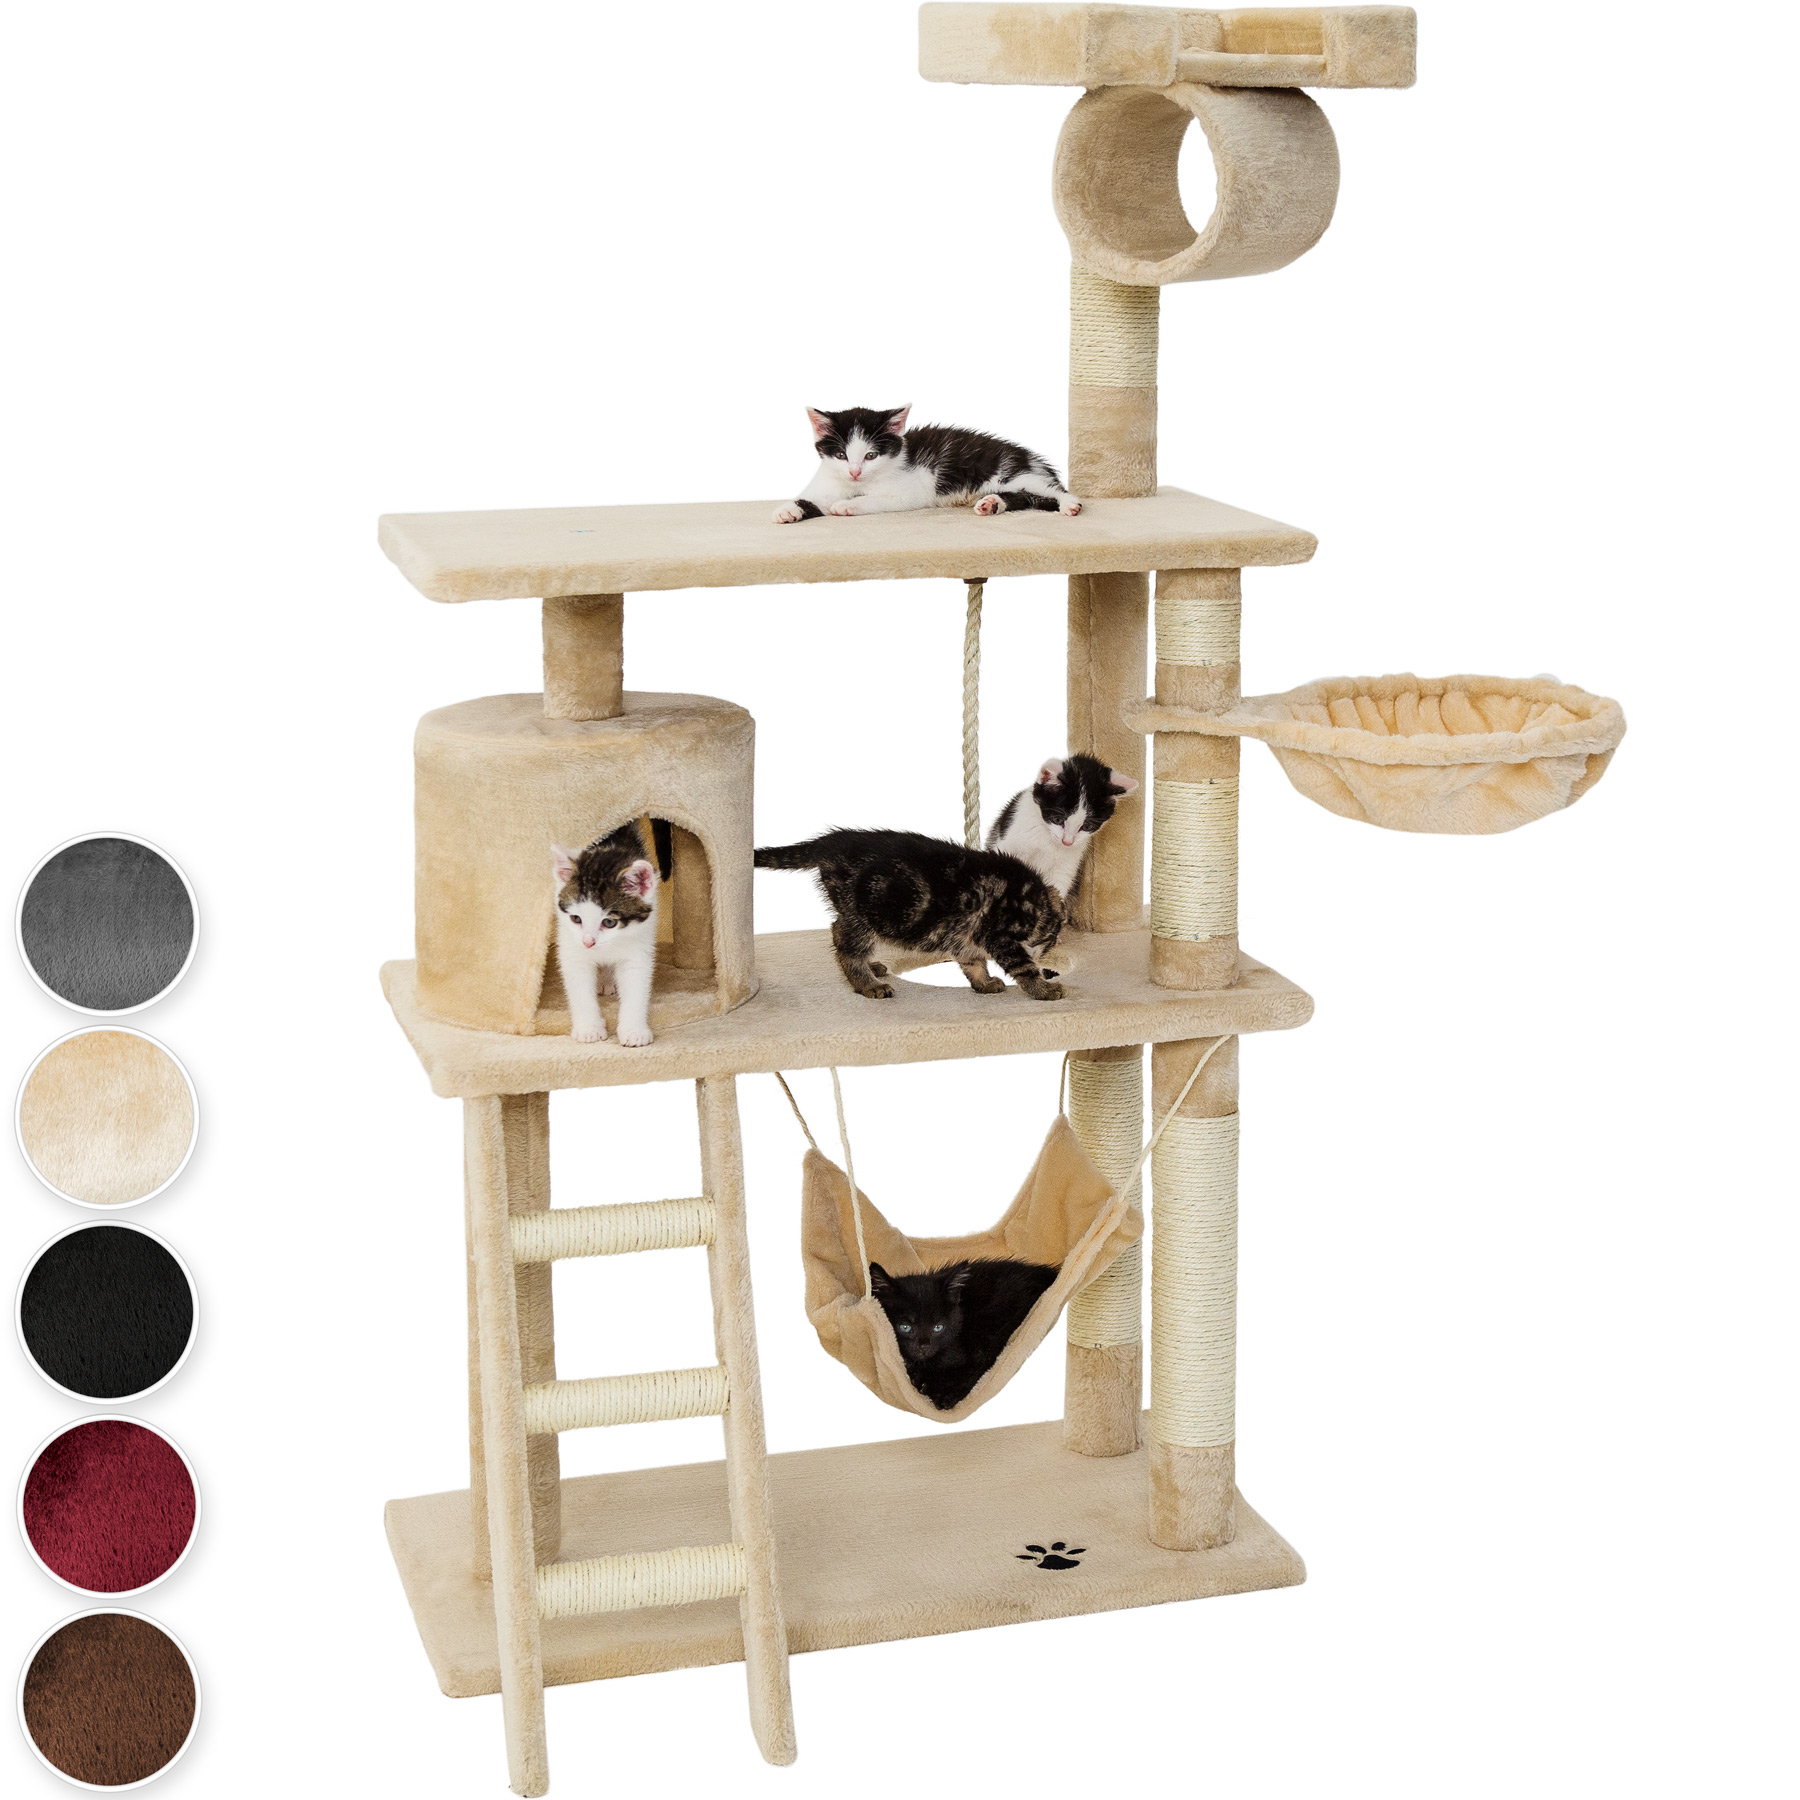 arbre chat griffoir grattoir animaux geant avec hamac lit 141 cm hauteur beige ebay. Black Bedroom Furniture Sets. Home Design Ideas